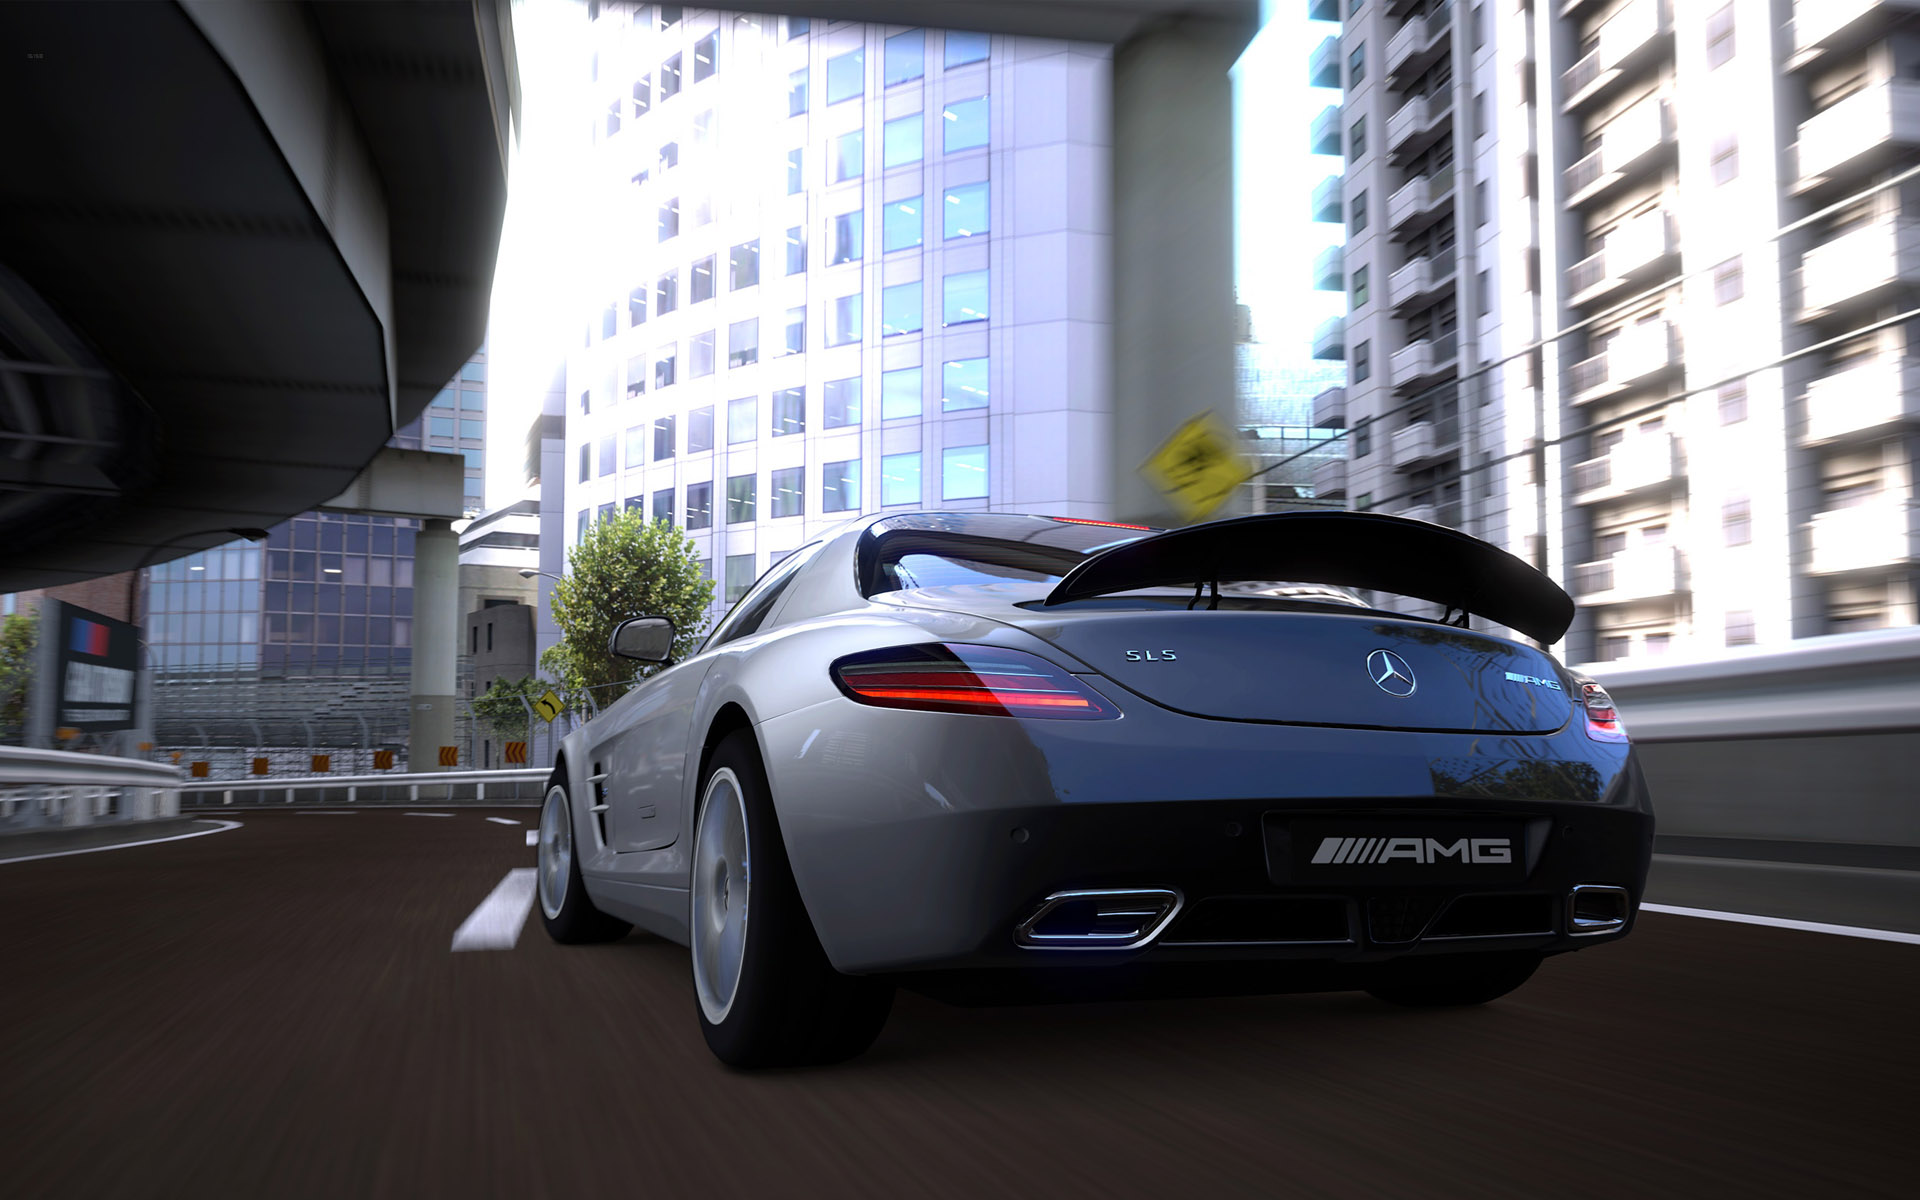 HD Games Wallpapers 16159